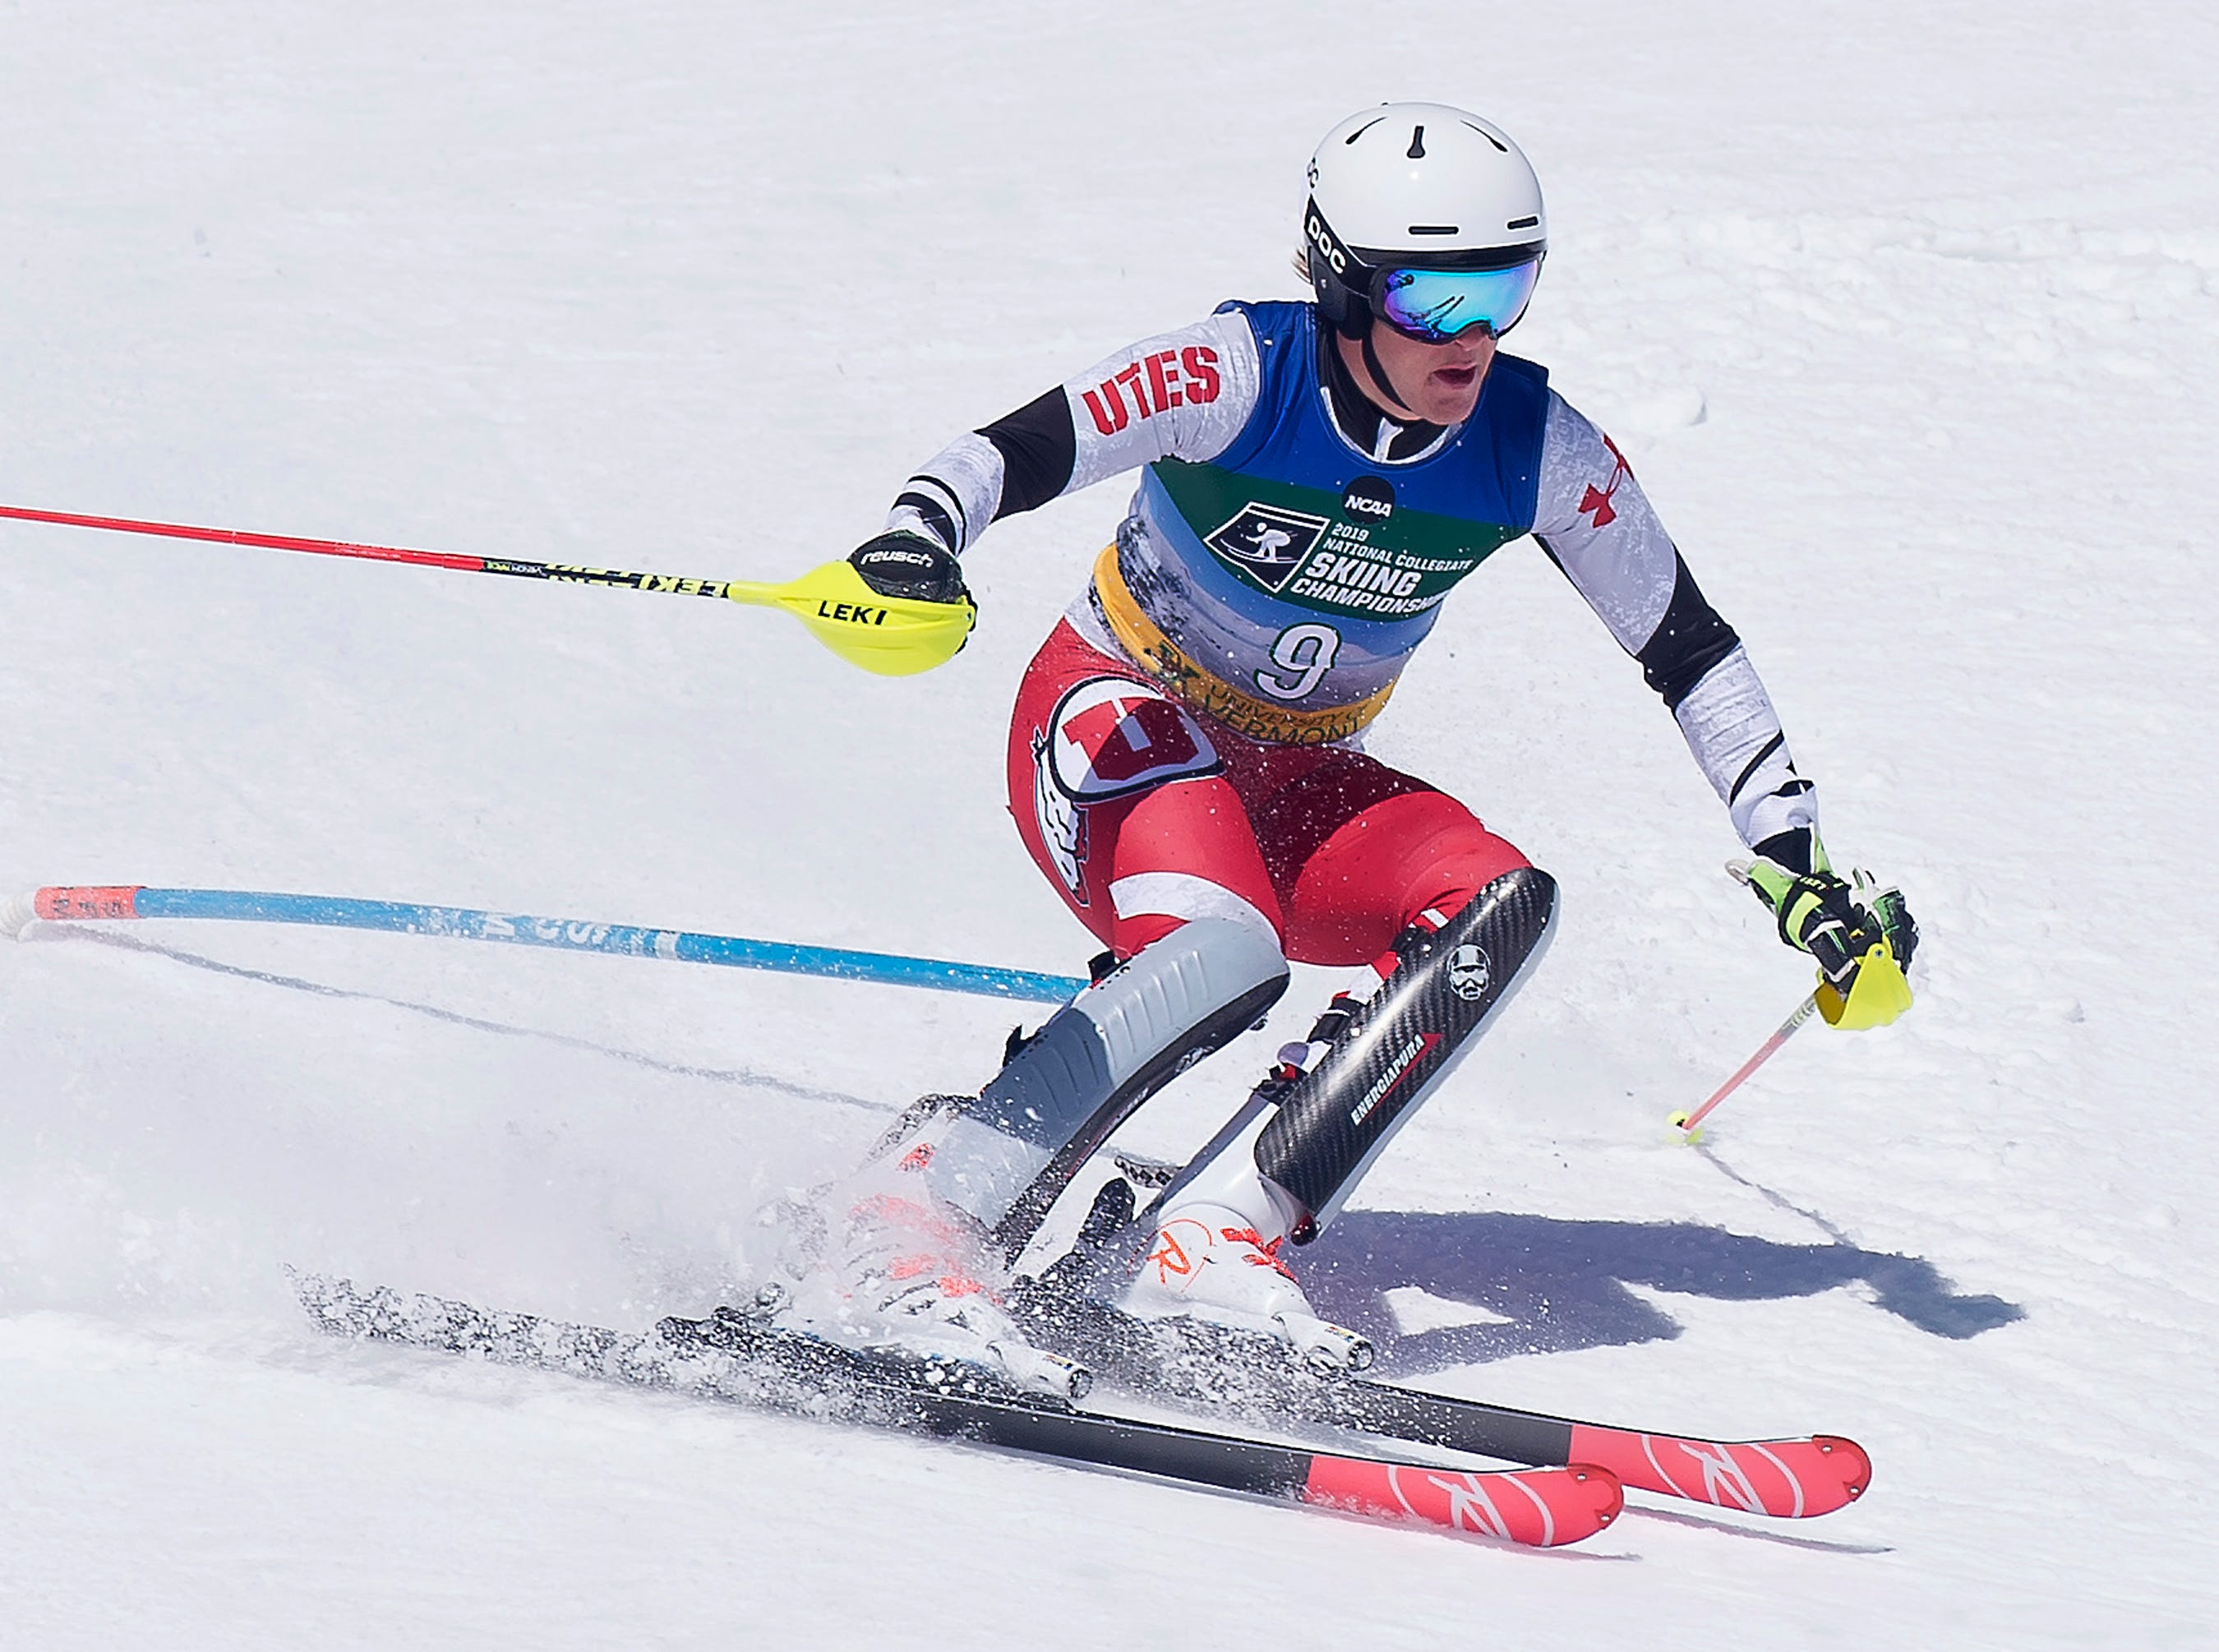 Utah's Joachim Lien knocks down a gate in his second run at the NCAA slalom championships on Saturday at Stowe Mountain Resort.